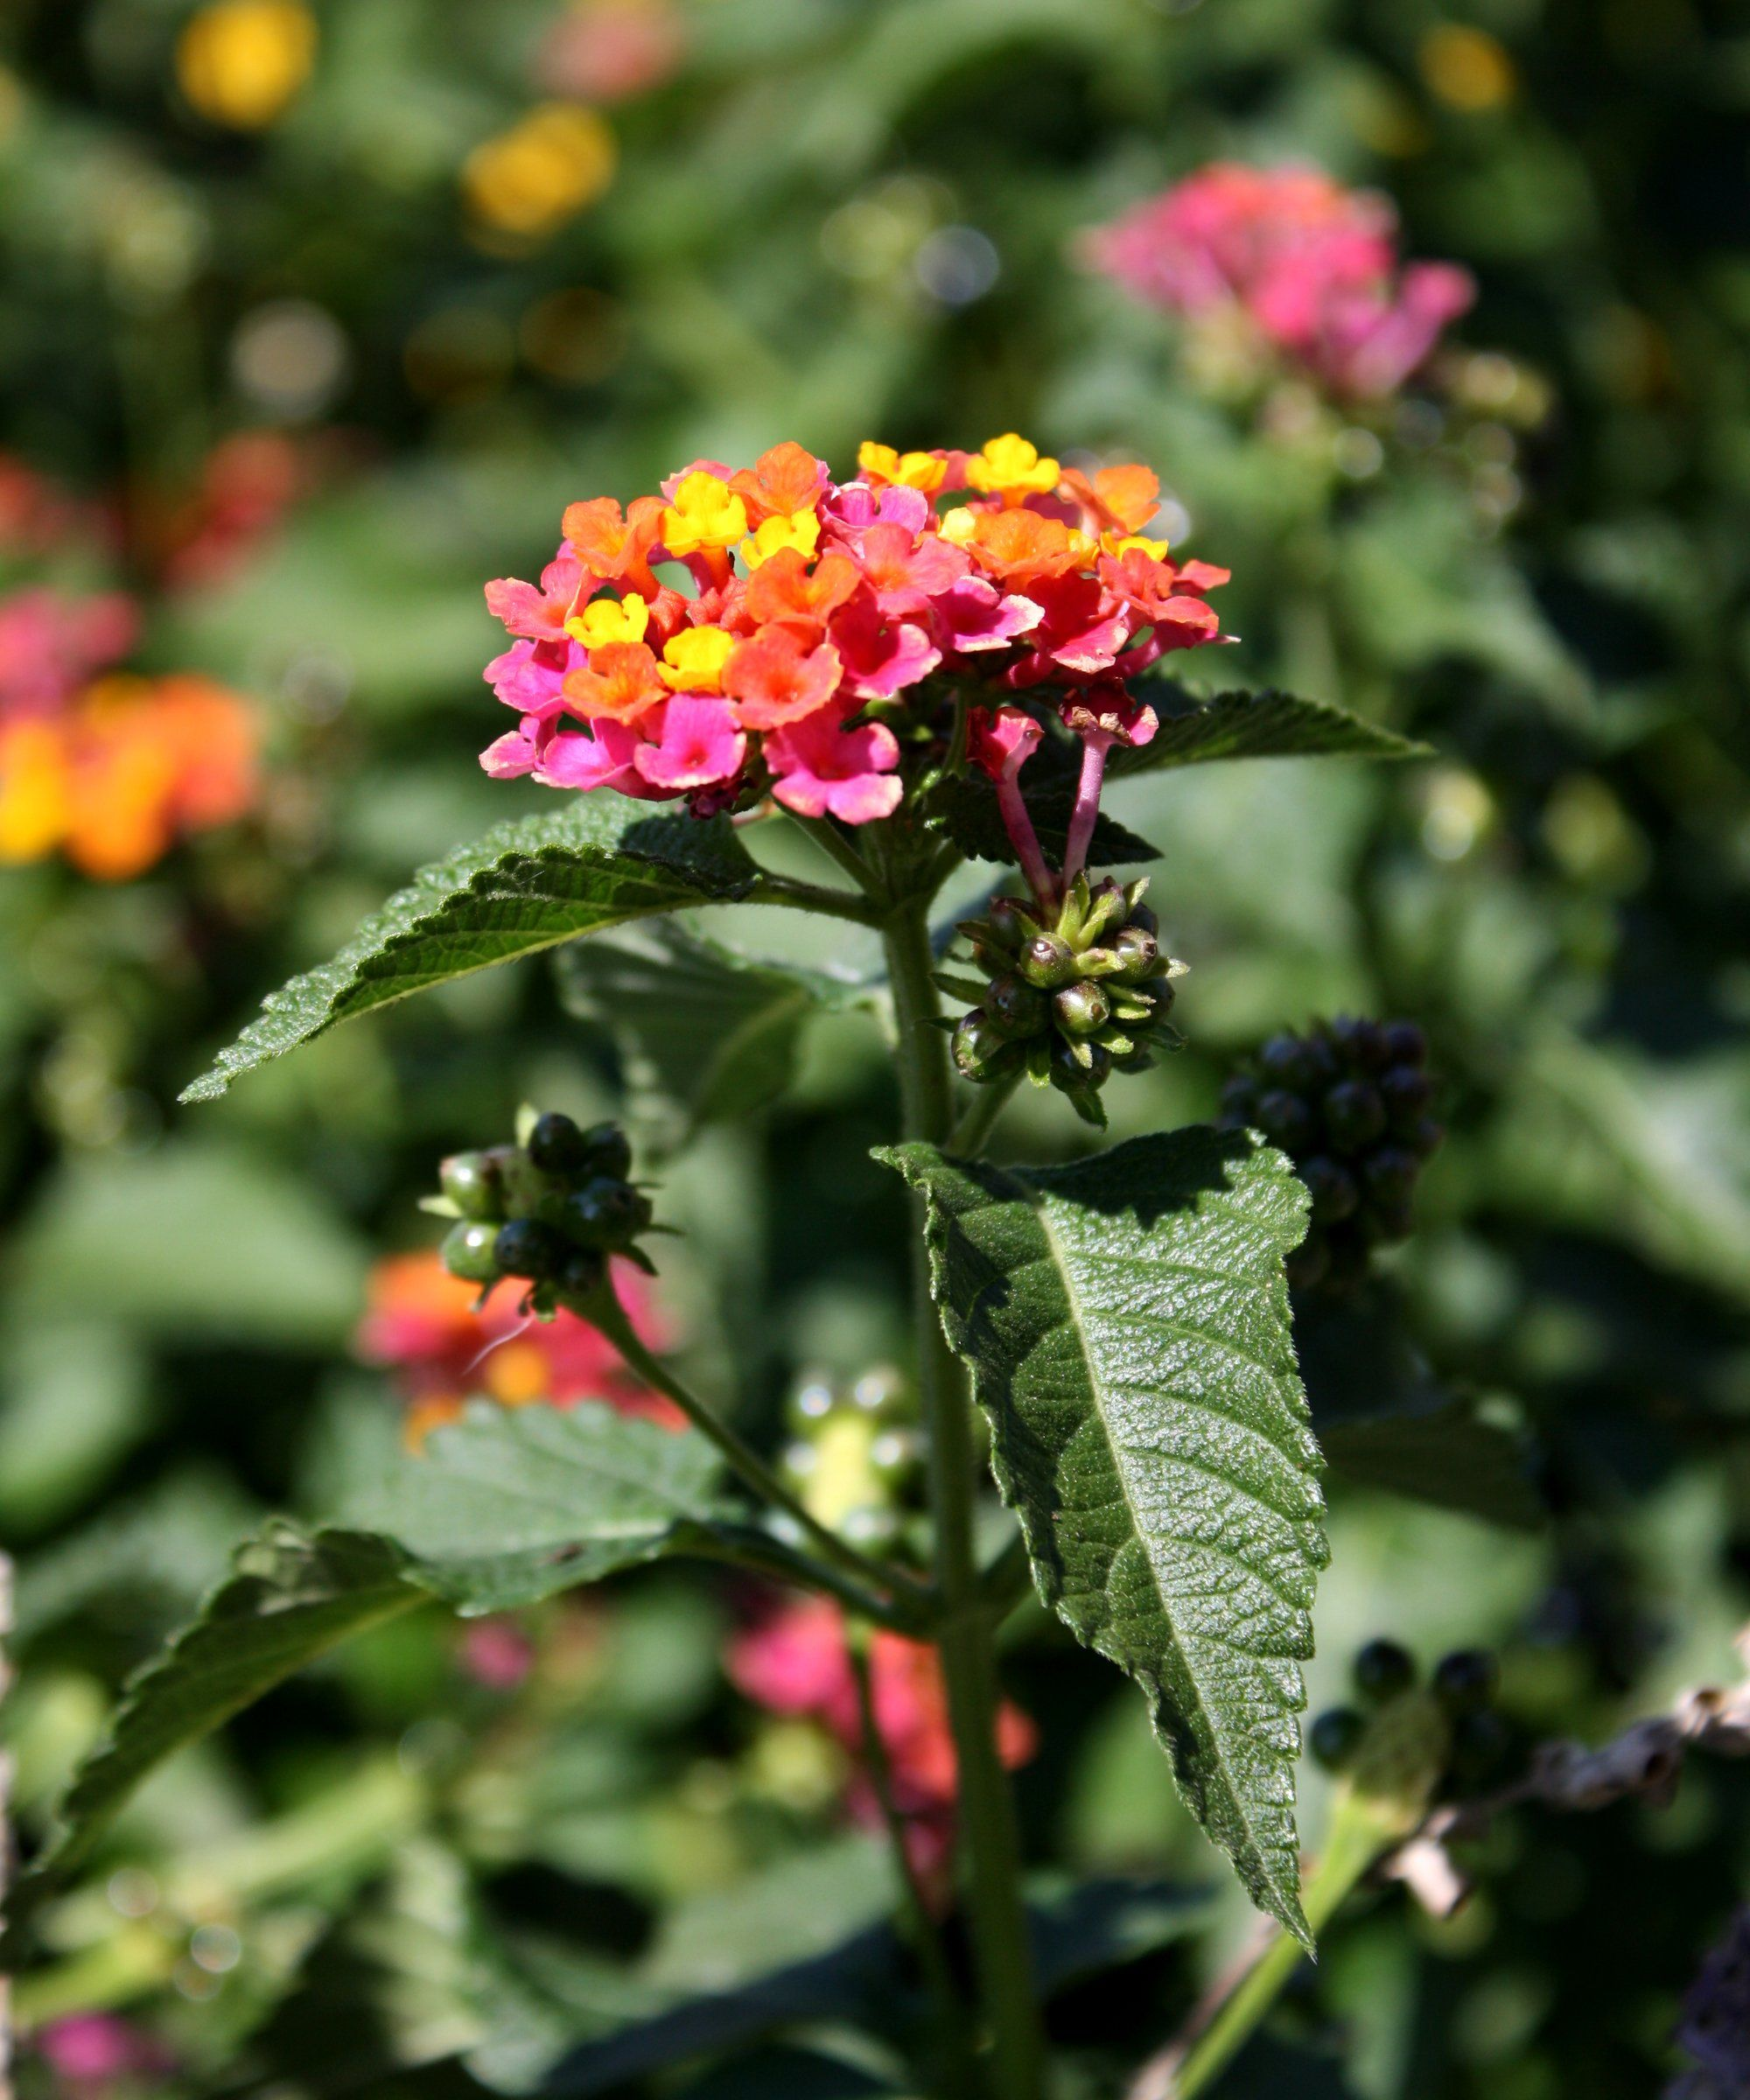 Butterfly plants butterfly bush flowers picture free for Garden trees with yellow flowers